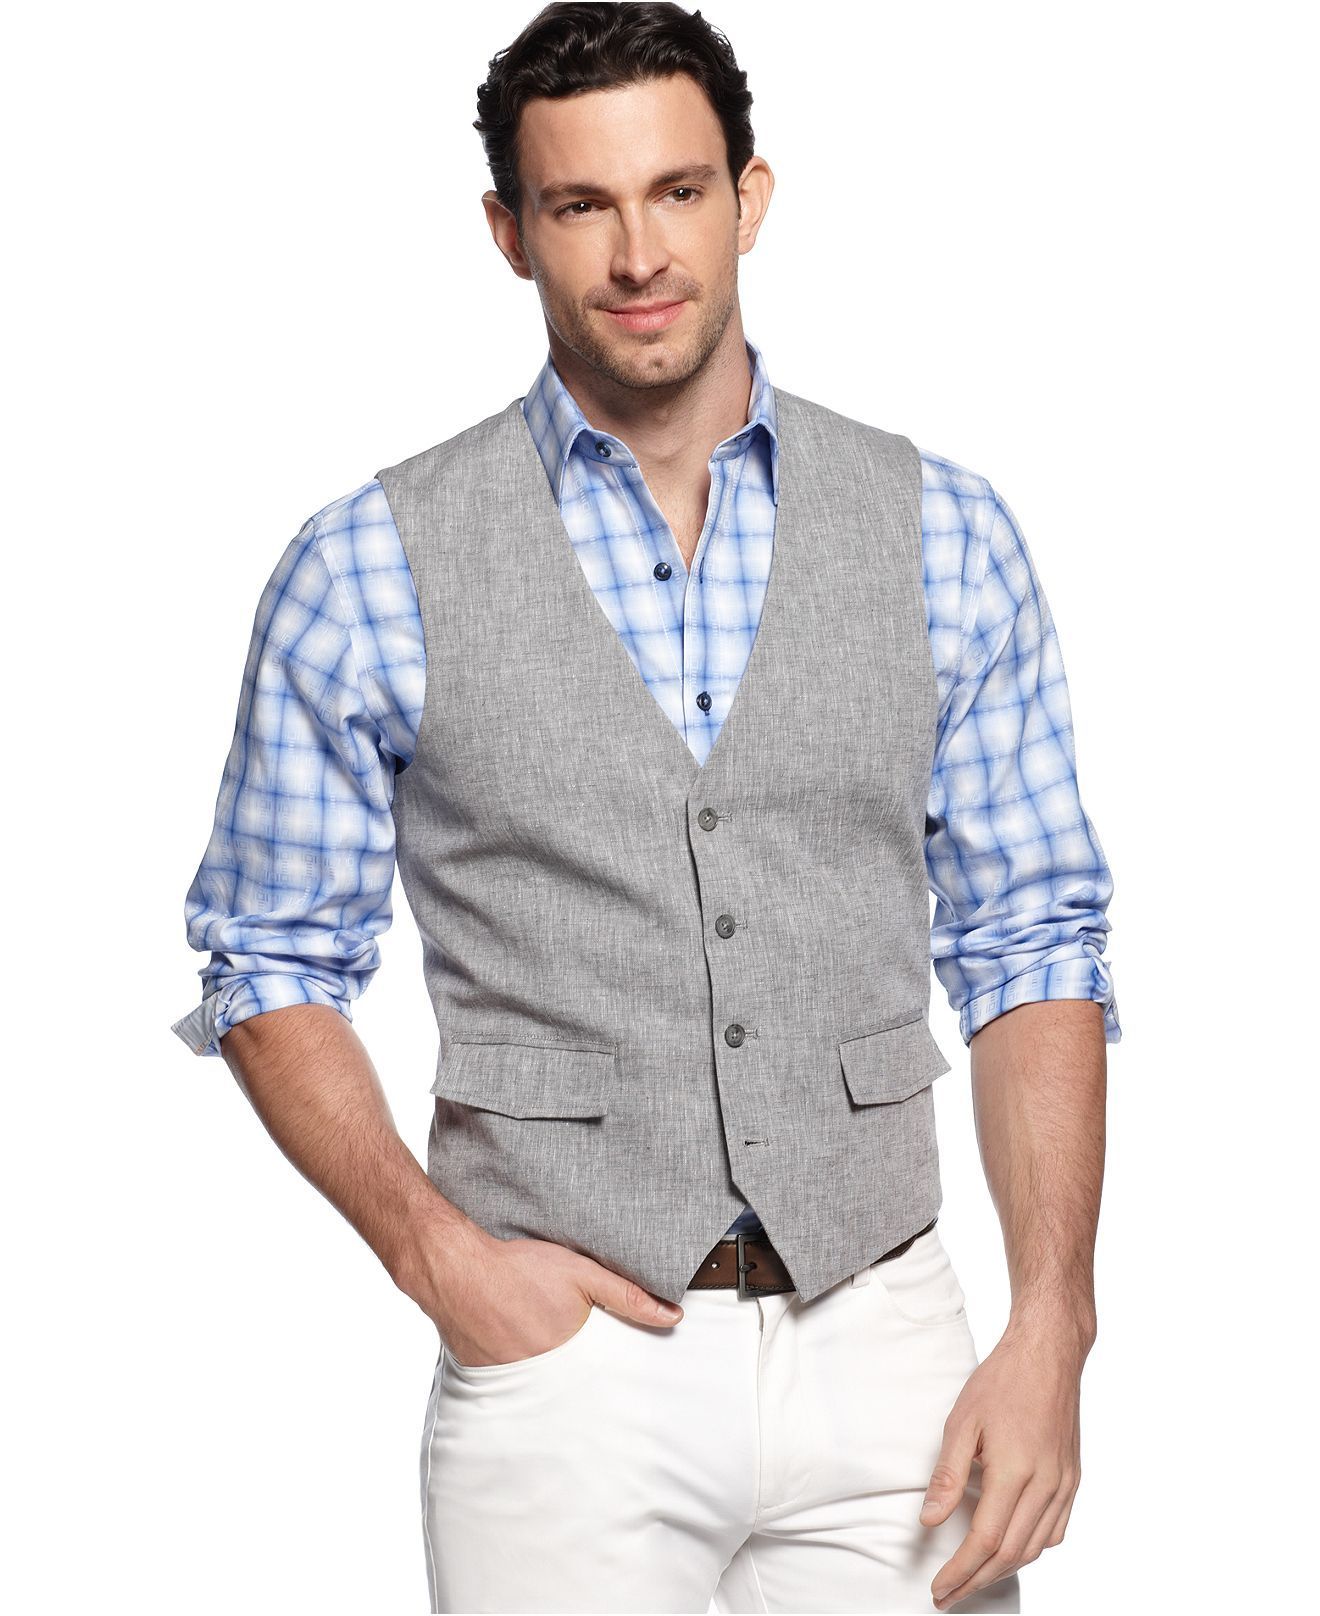 Gray Vest For Mismatch Groomsmen Different Pants Guys